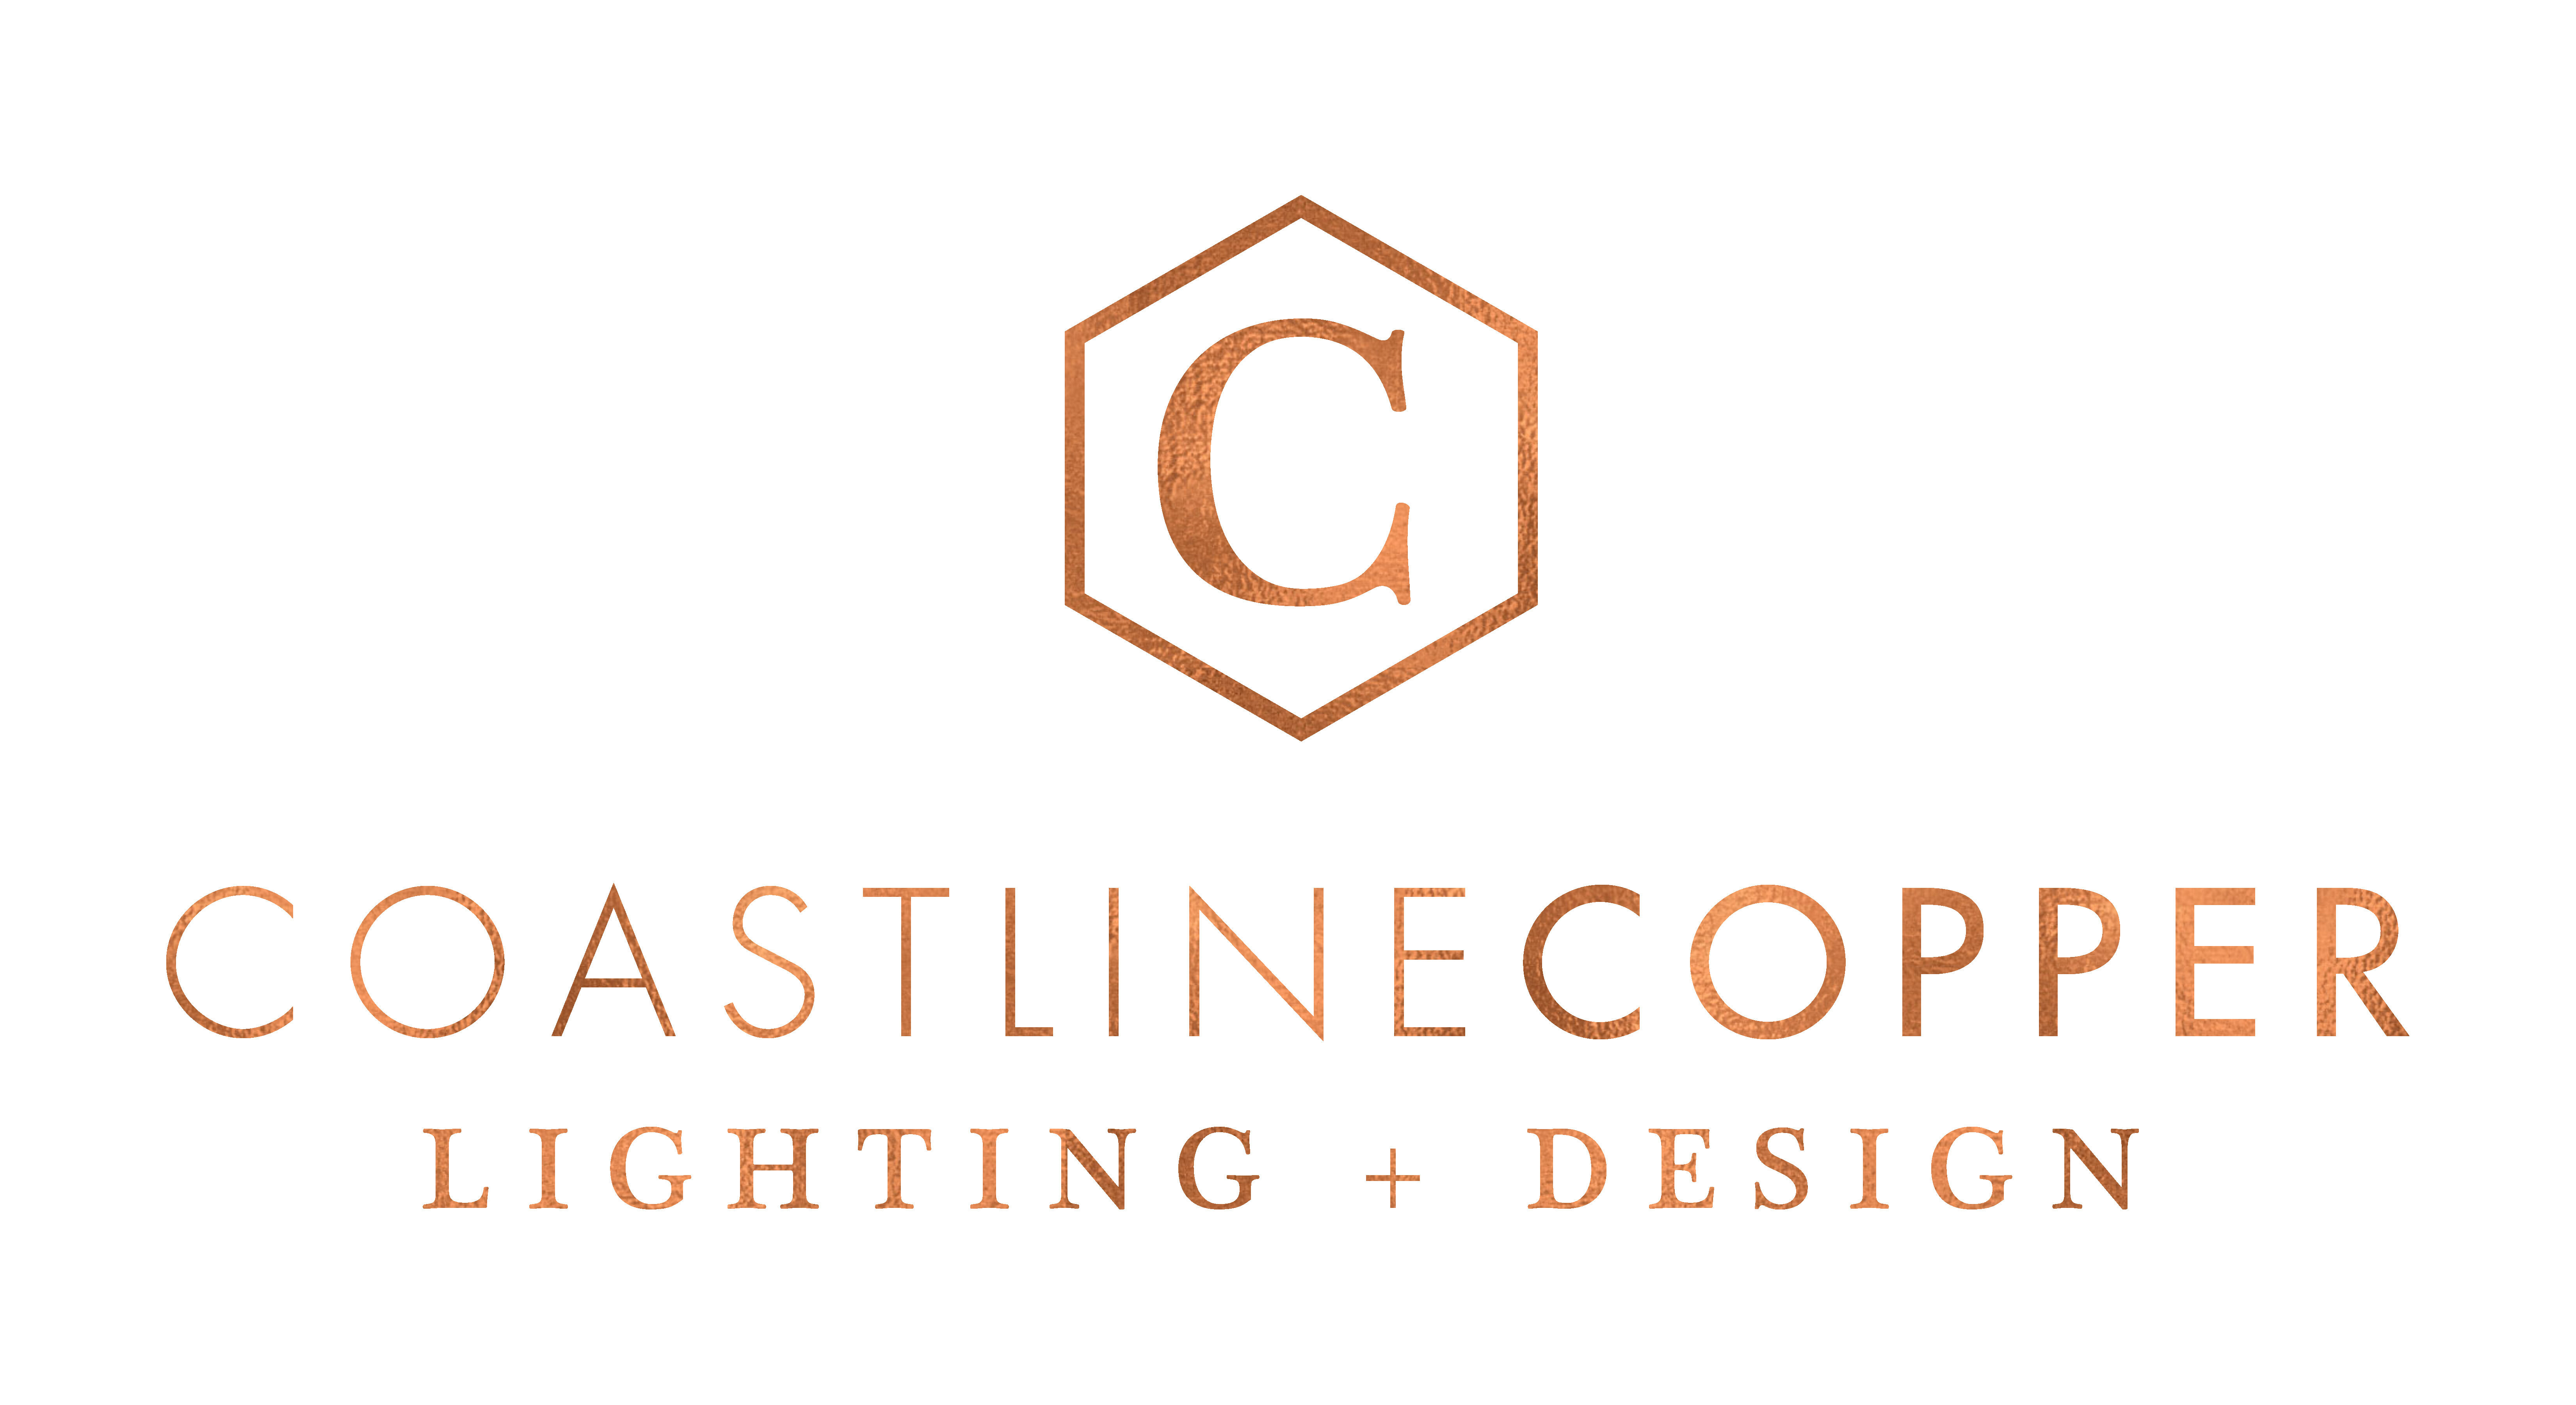 WELCOME TO COASTLINE COPPER